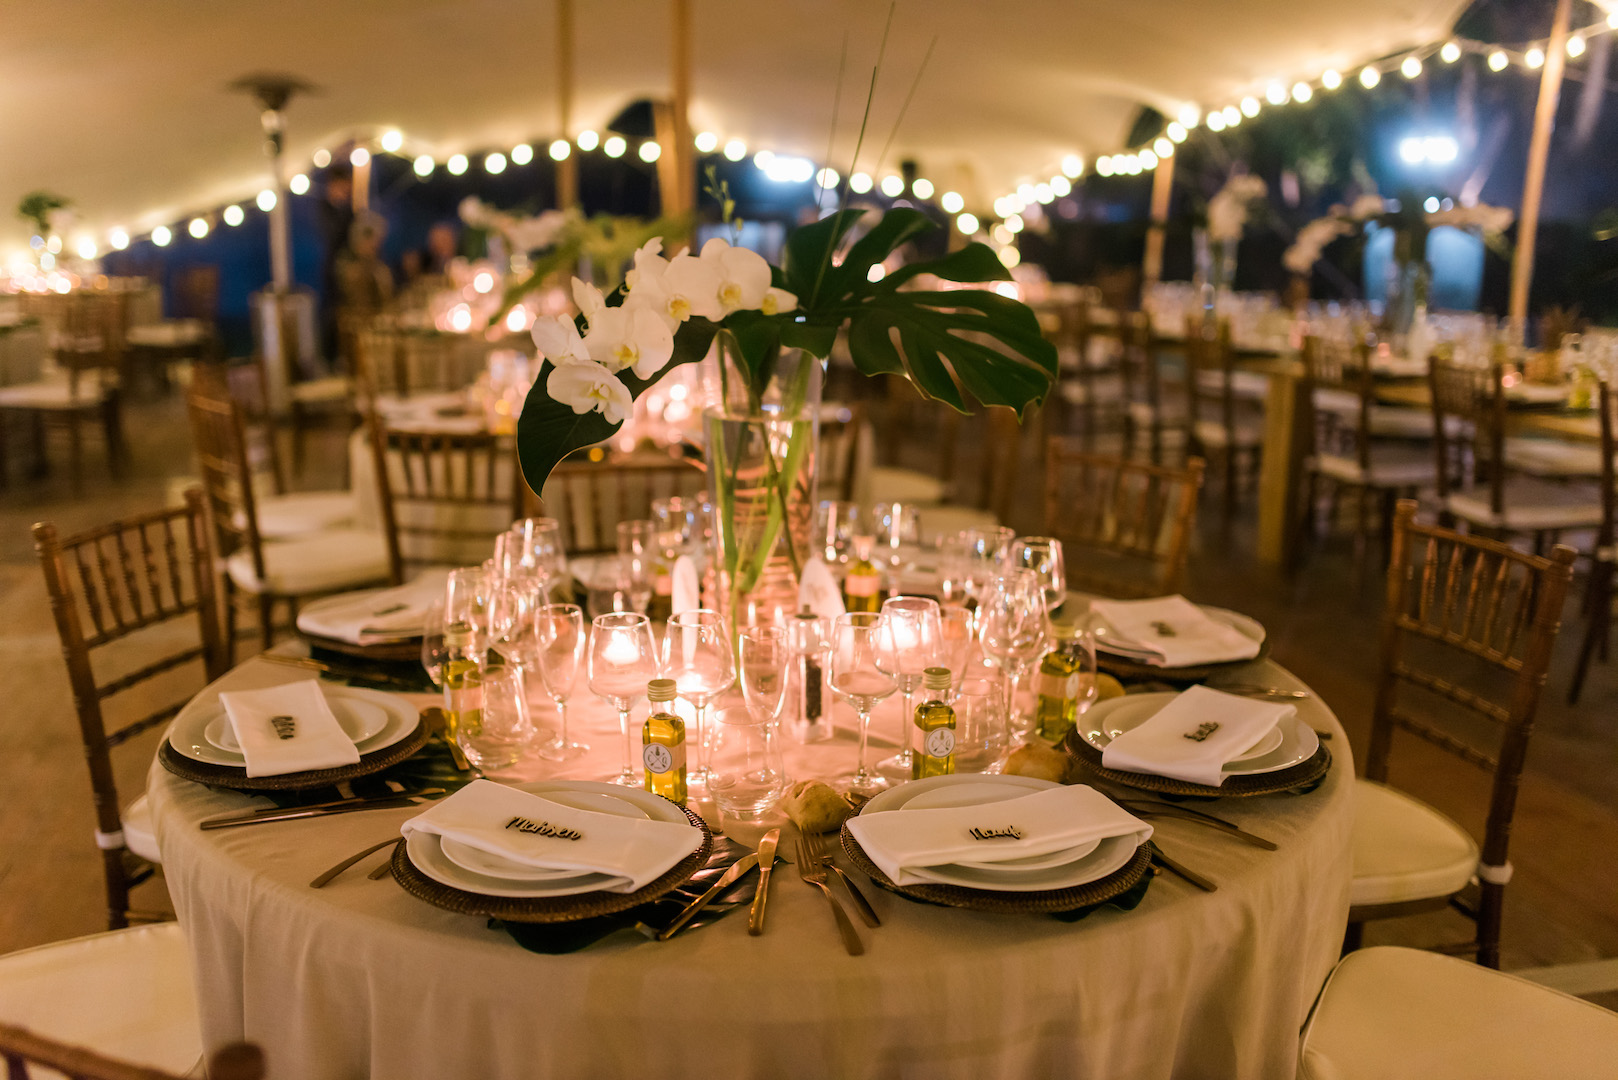 Tropical wedding decor 13 in south of france wedding planner muriel tropical wedding decor 13 in south of france wedding planner muriel saldalamacchia photo by dan petrovic junglespirit Images